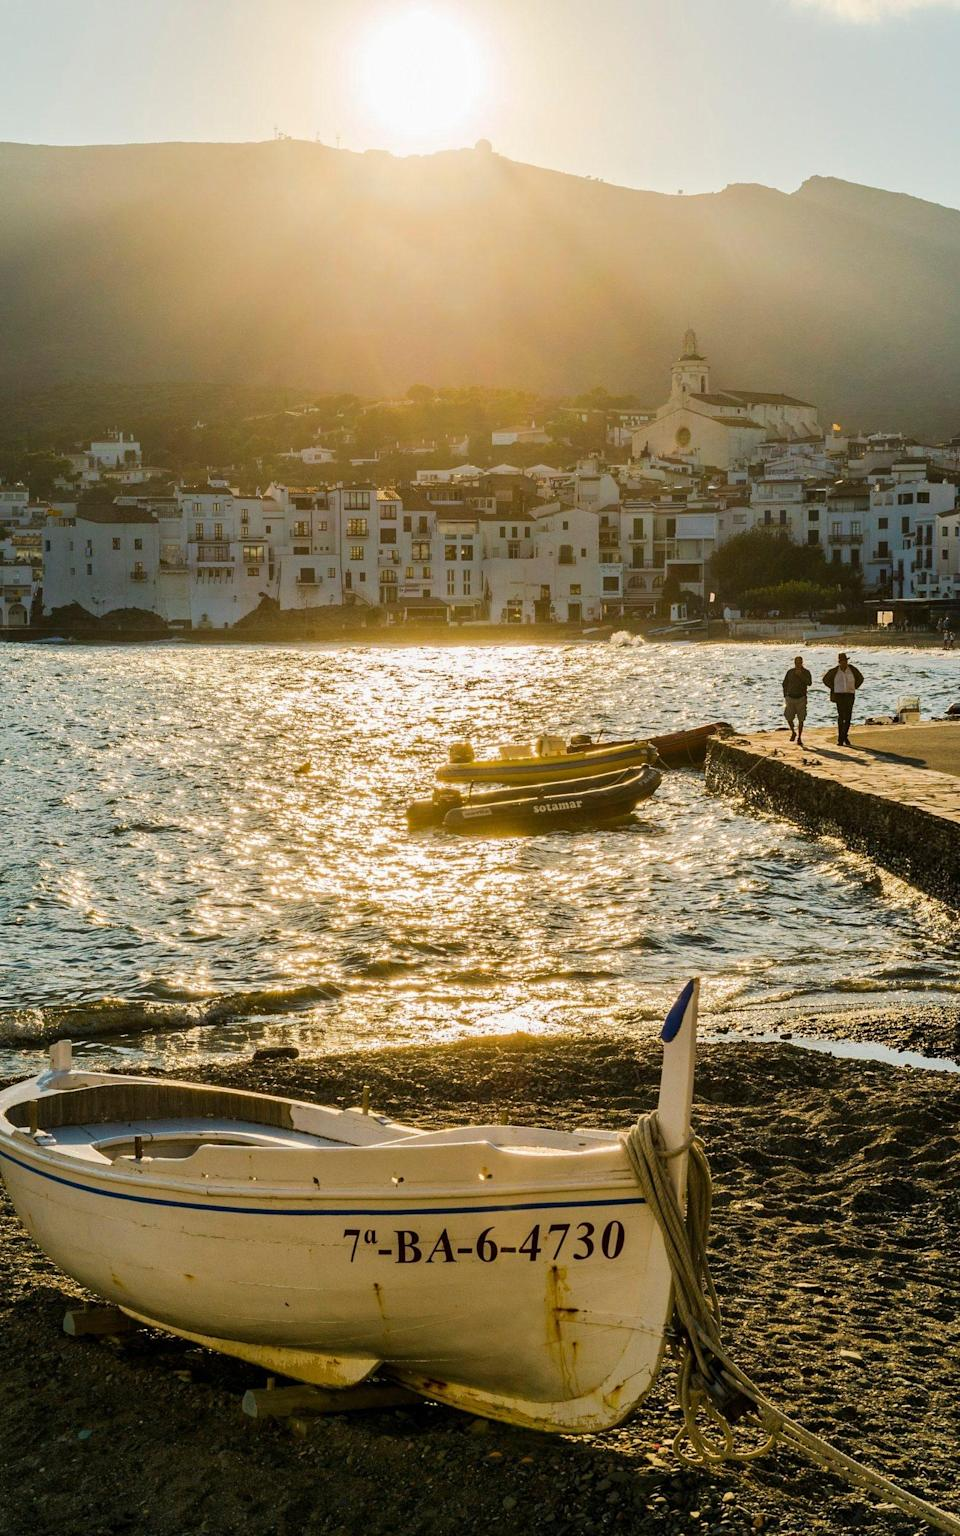 boat overlooking water at sunset - Moment RF /Gerard Puigmal